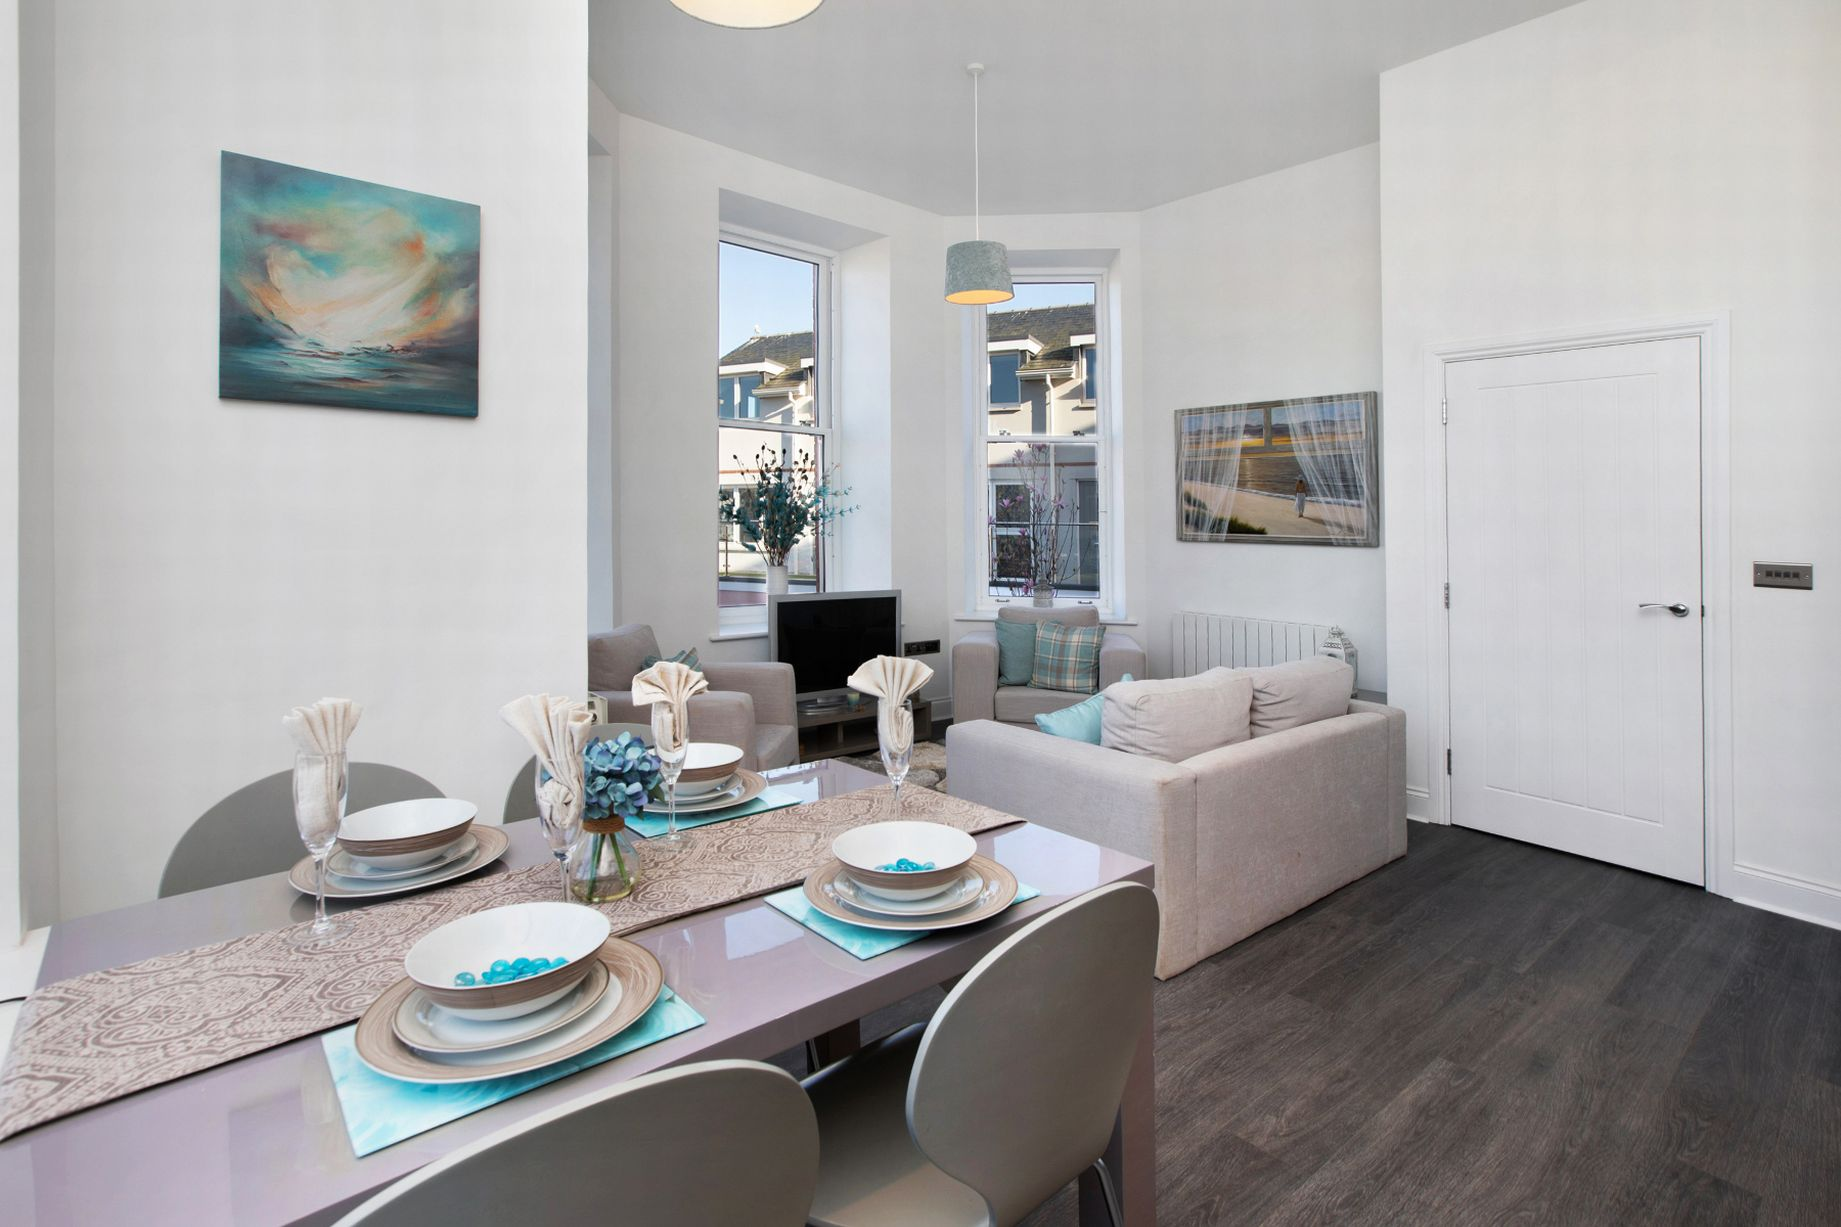 Silverlawns Is A Stunning Collection Of New Apartments And Houses In Paignton South Devon Devon Live